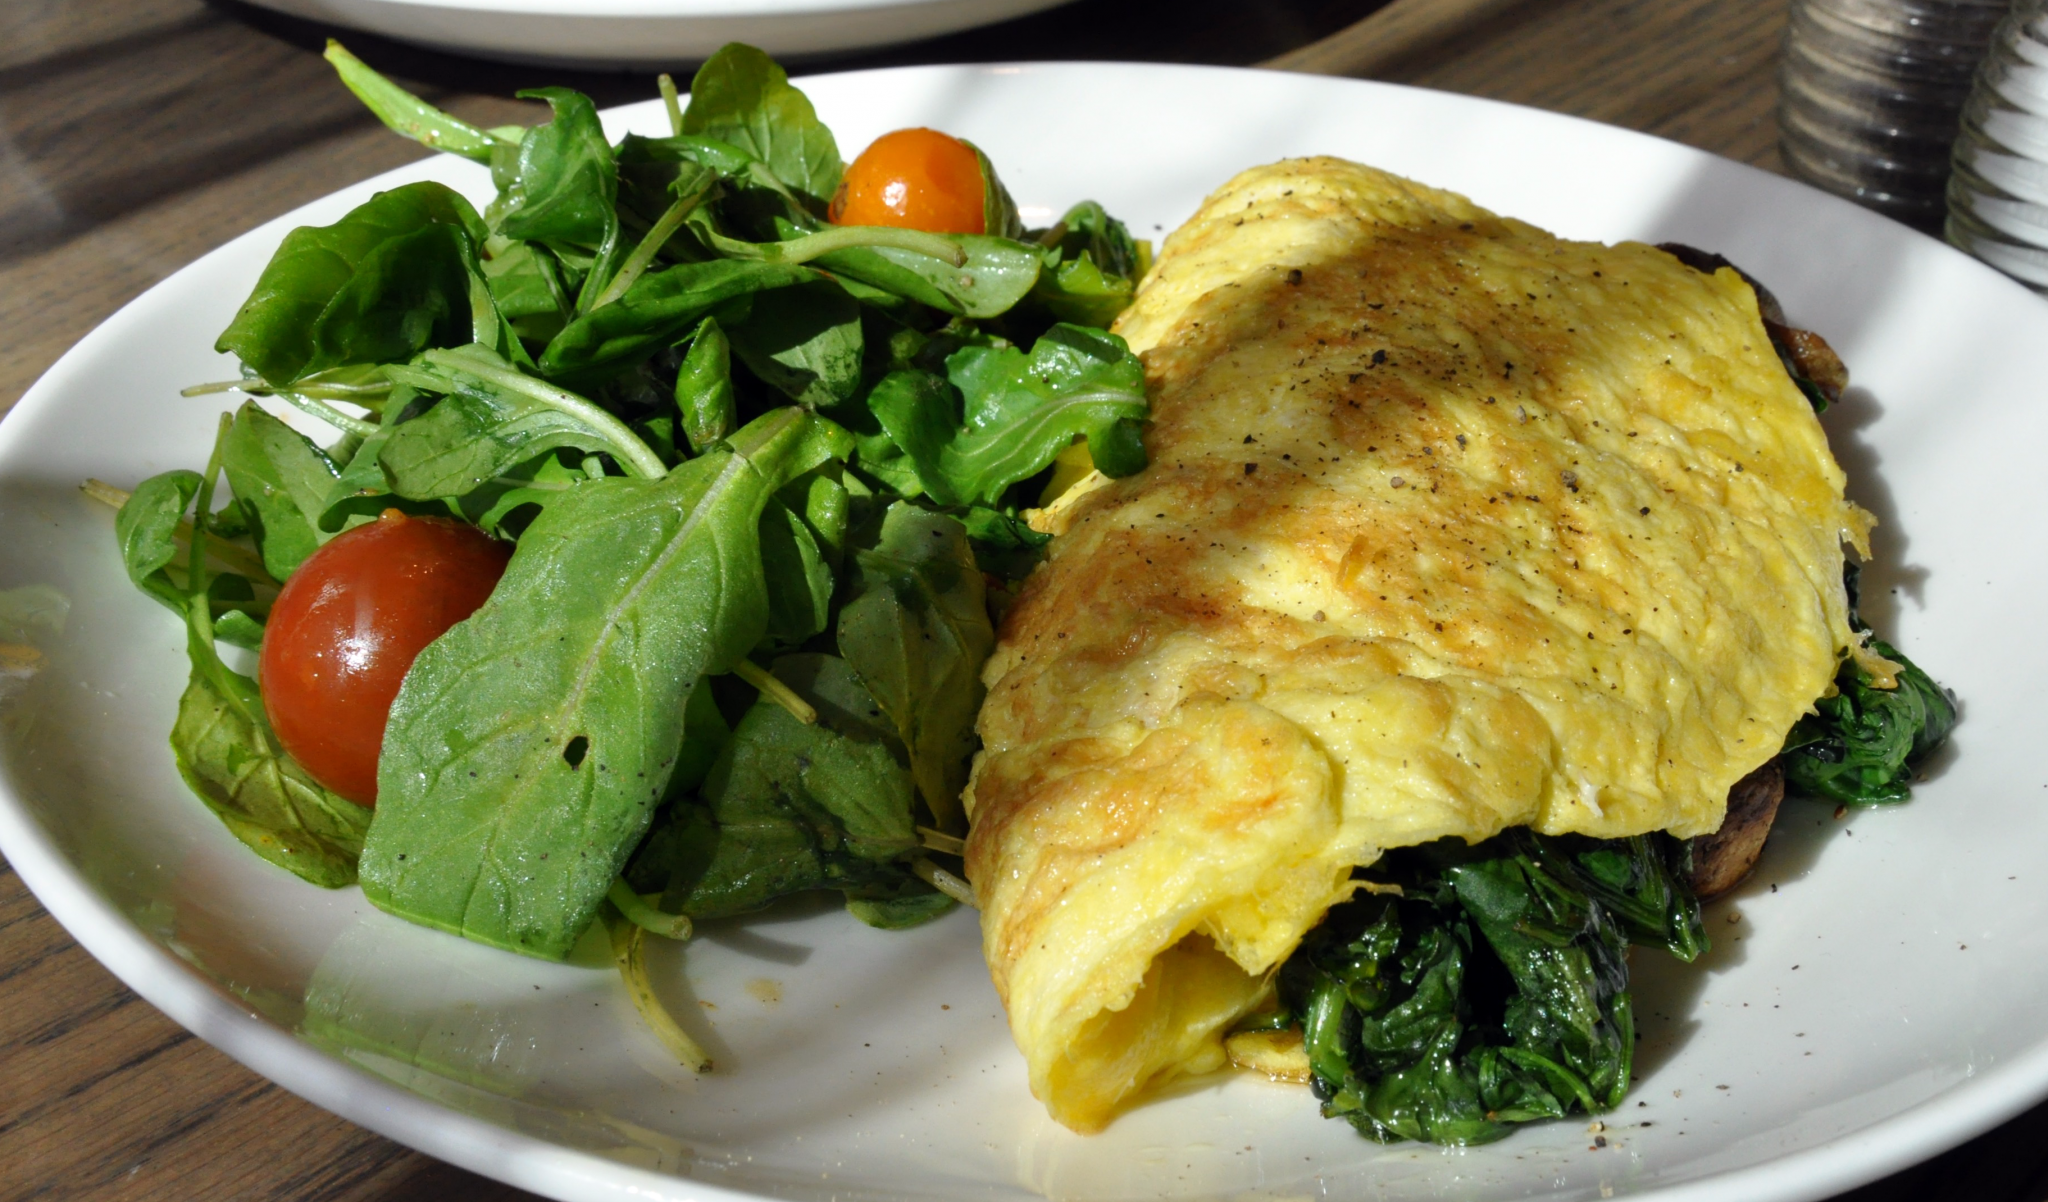 Breakfast egg omelet with spinach and mushrooms served with arugula and tomato salad